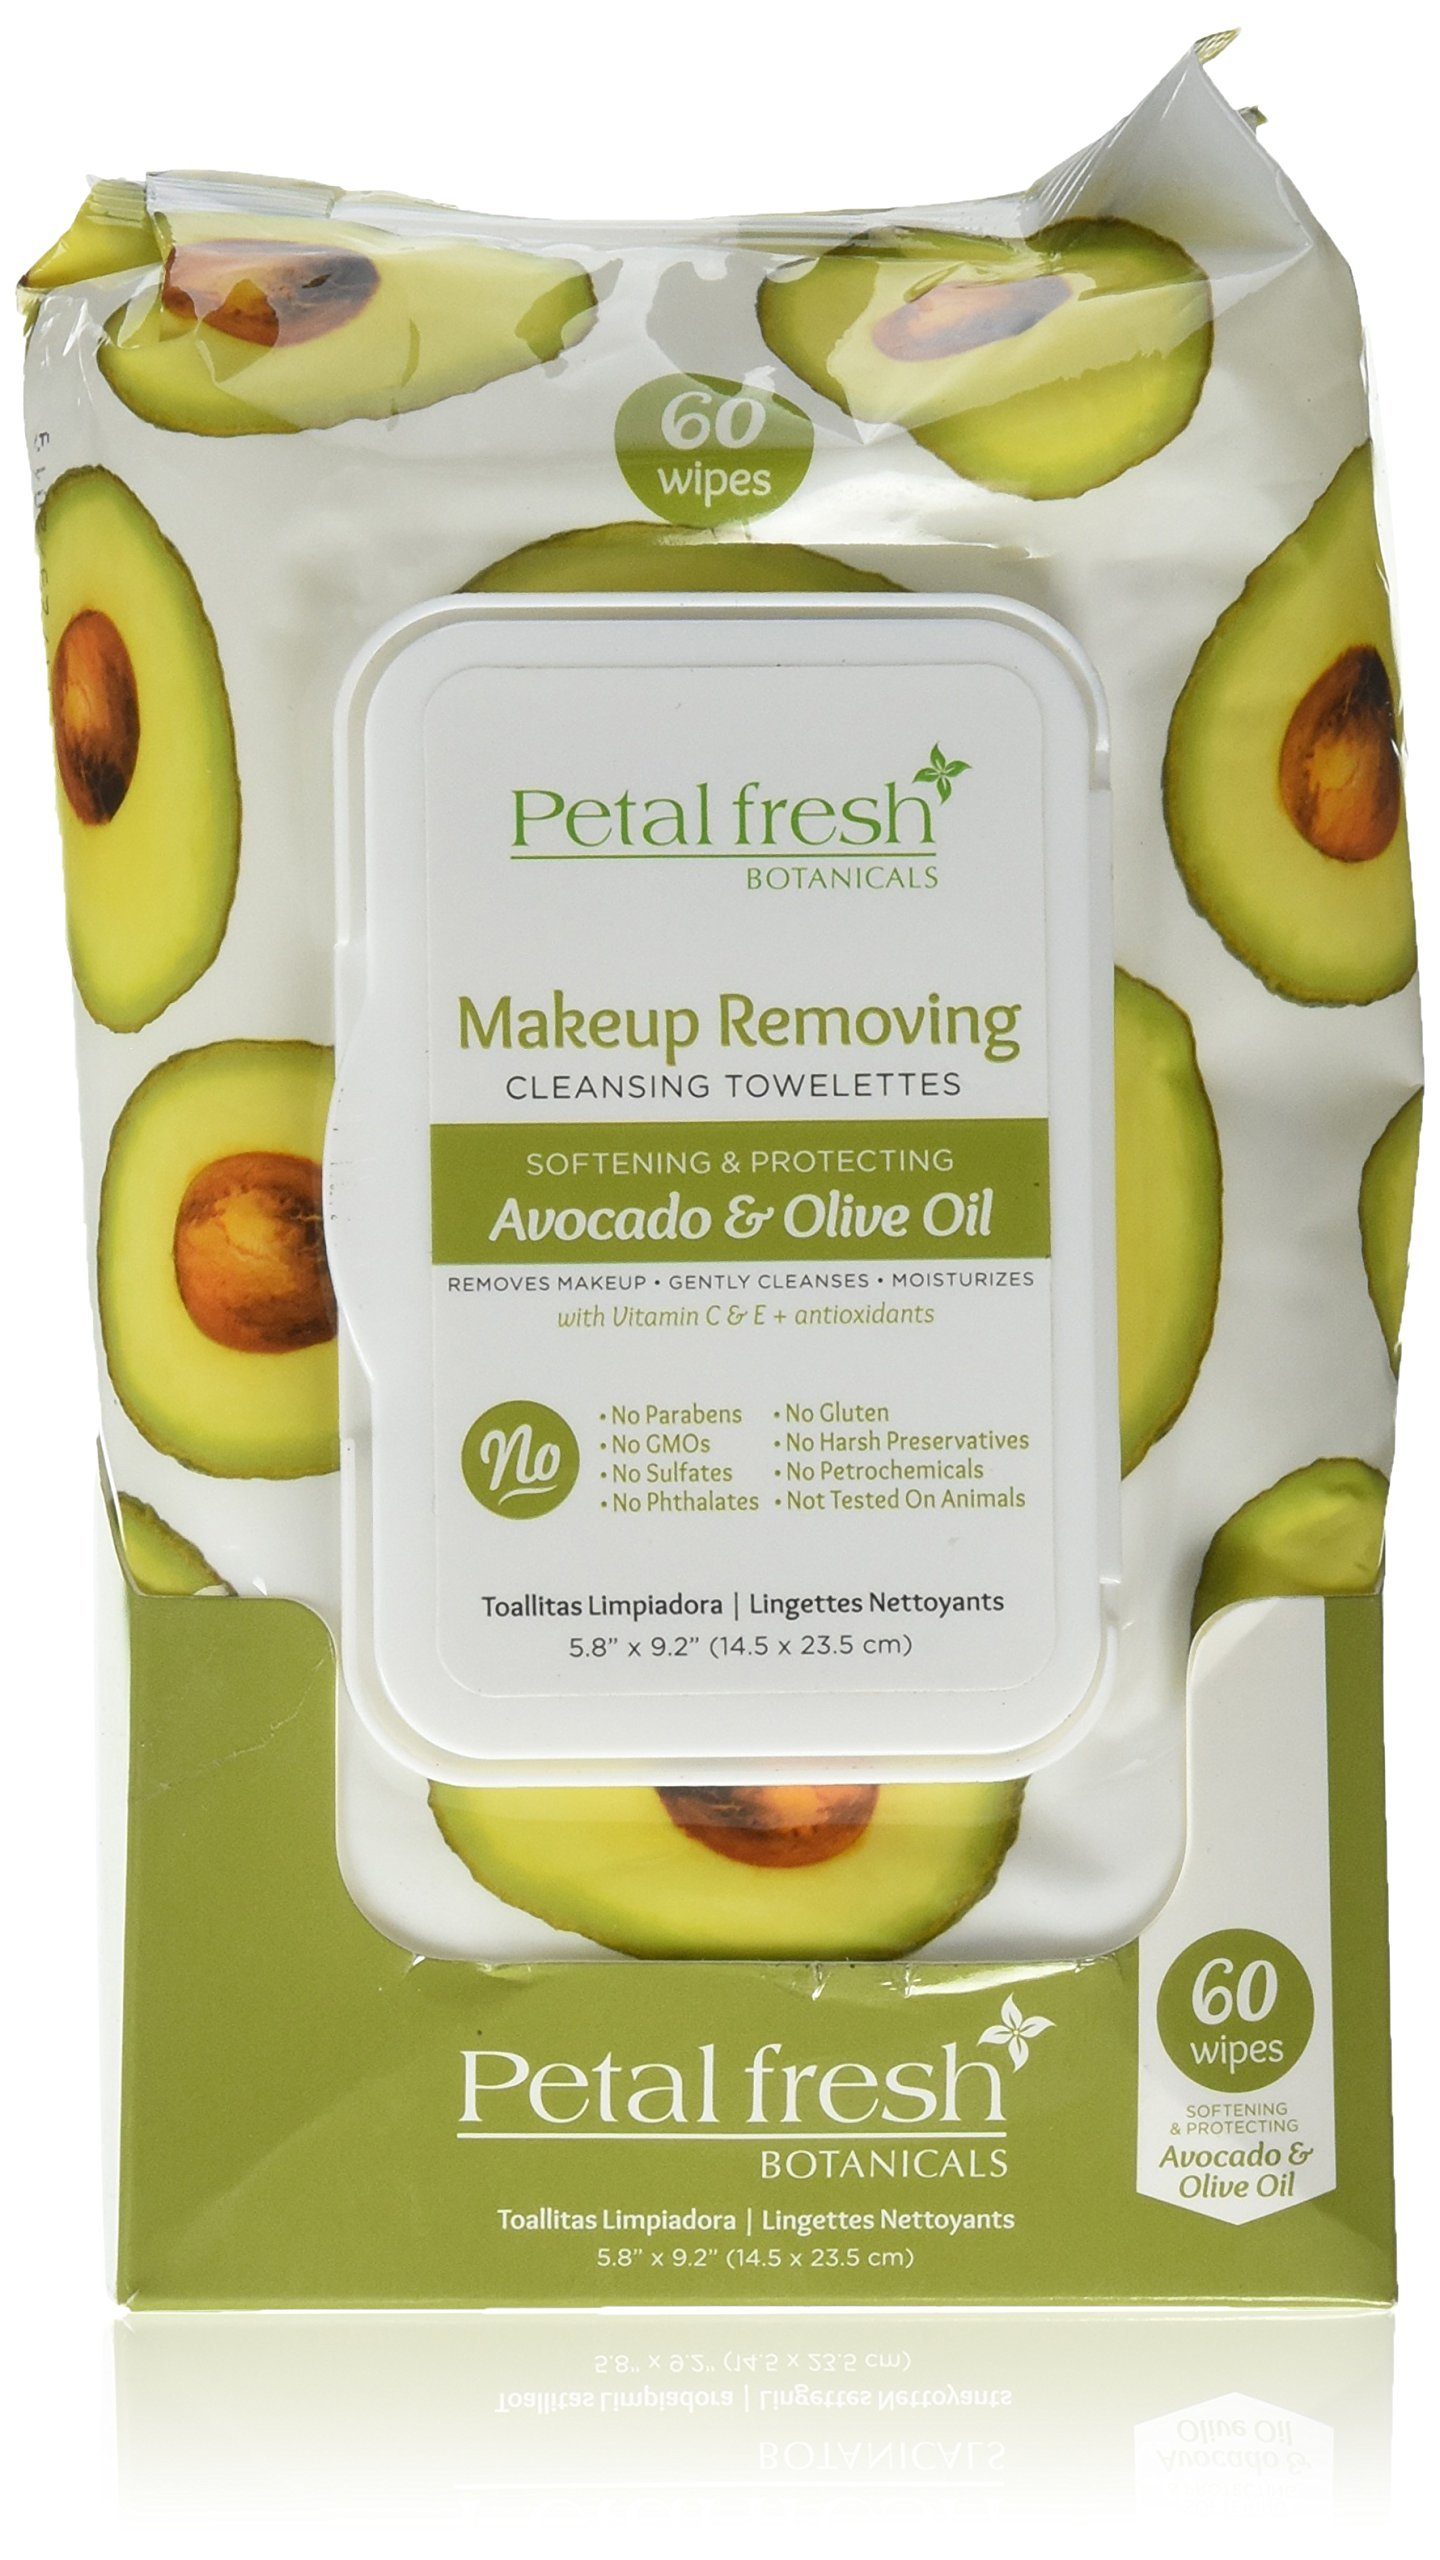 Petal Fresh Brightening Avocado & Olive Oil Softening Plus Protecting Facial Wipes, 60 Count